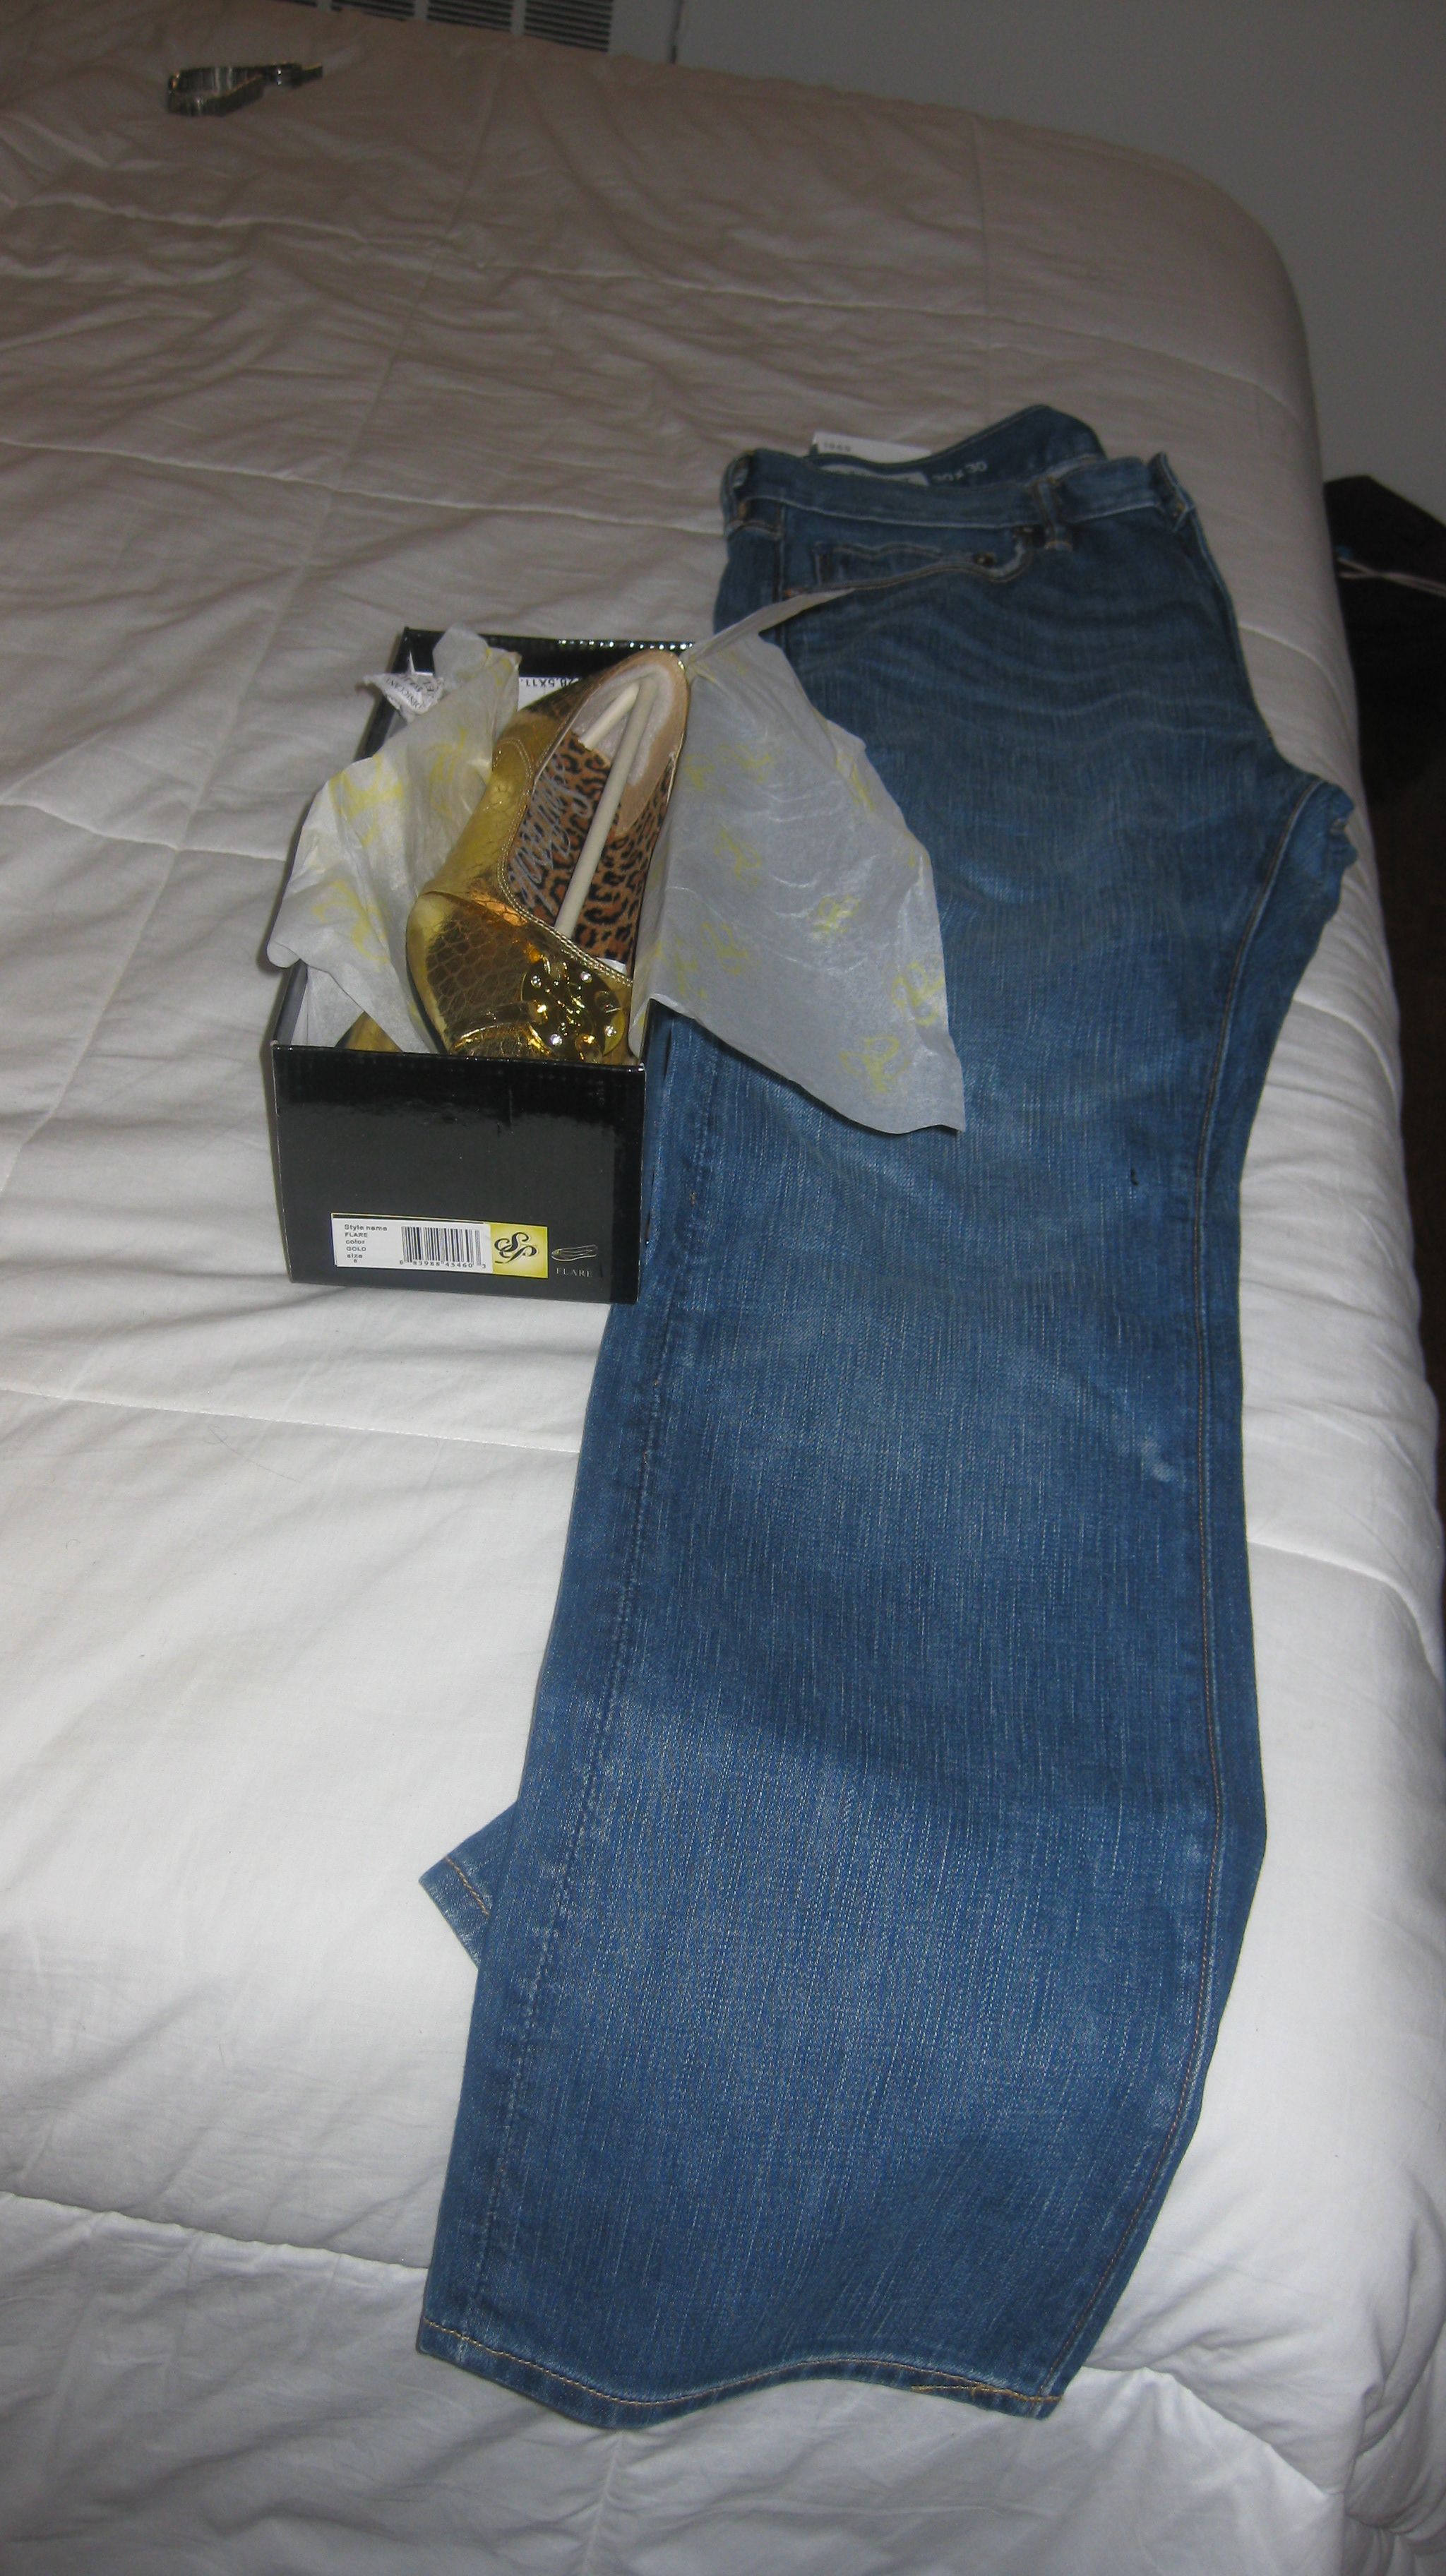 Gap Jeans and South Pole flats